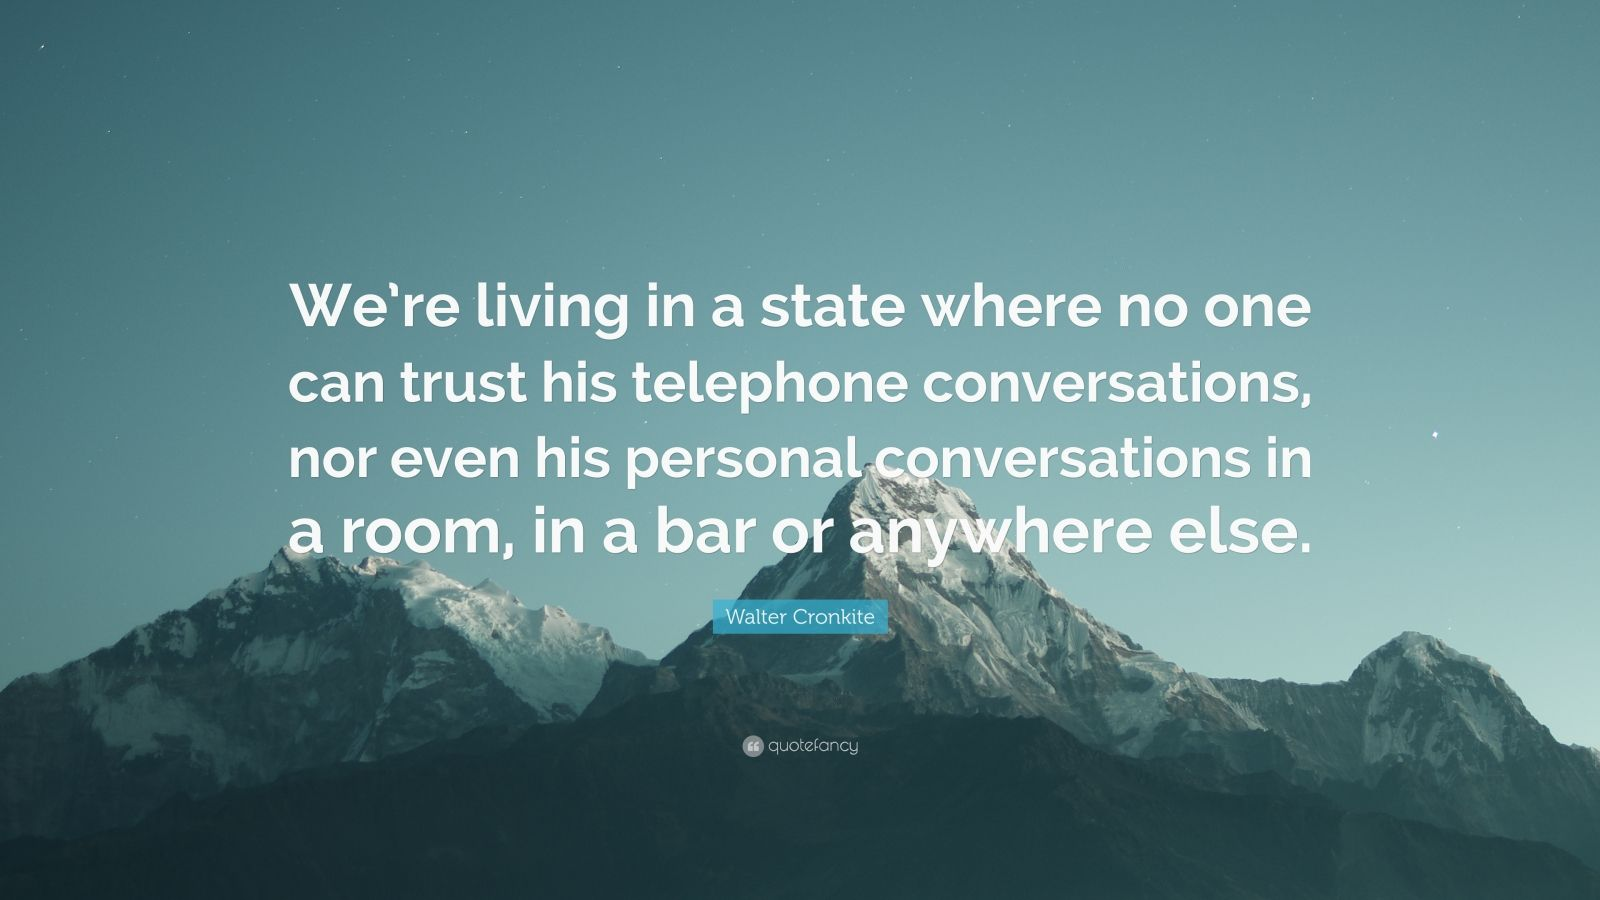 """Walter Cronkite Quote: """"We're living in a state where no one can trust his telephone conversations, nor even his personal conversations in a room, in a bar or anywhere else."""""""